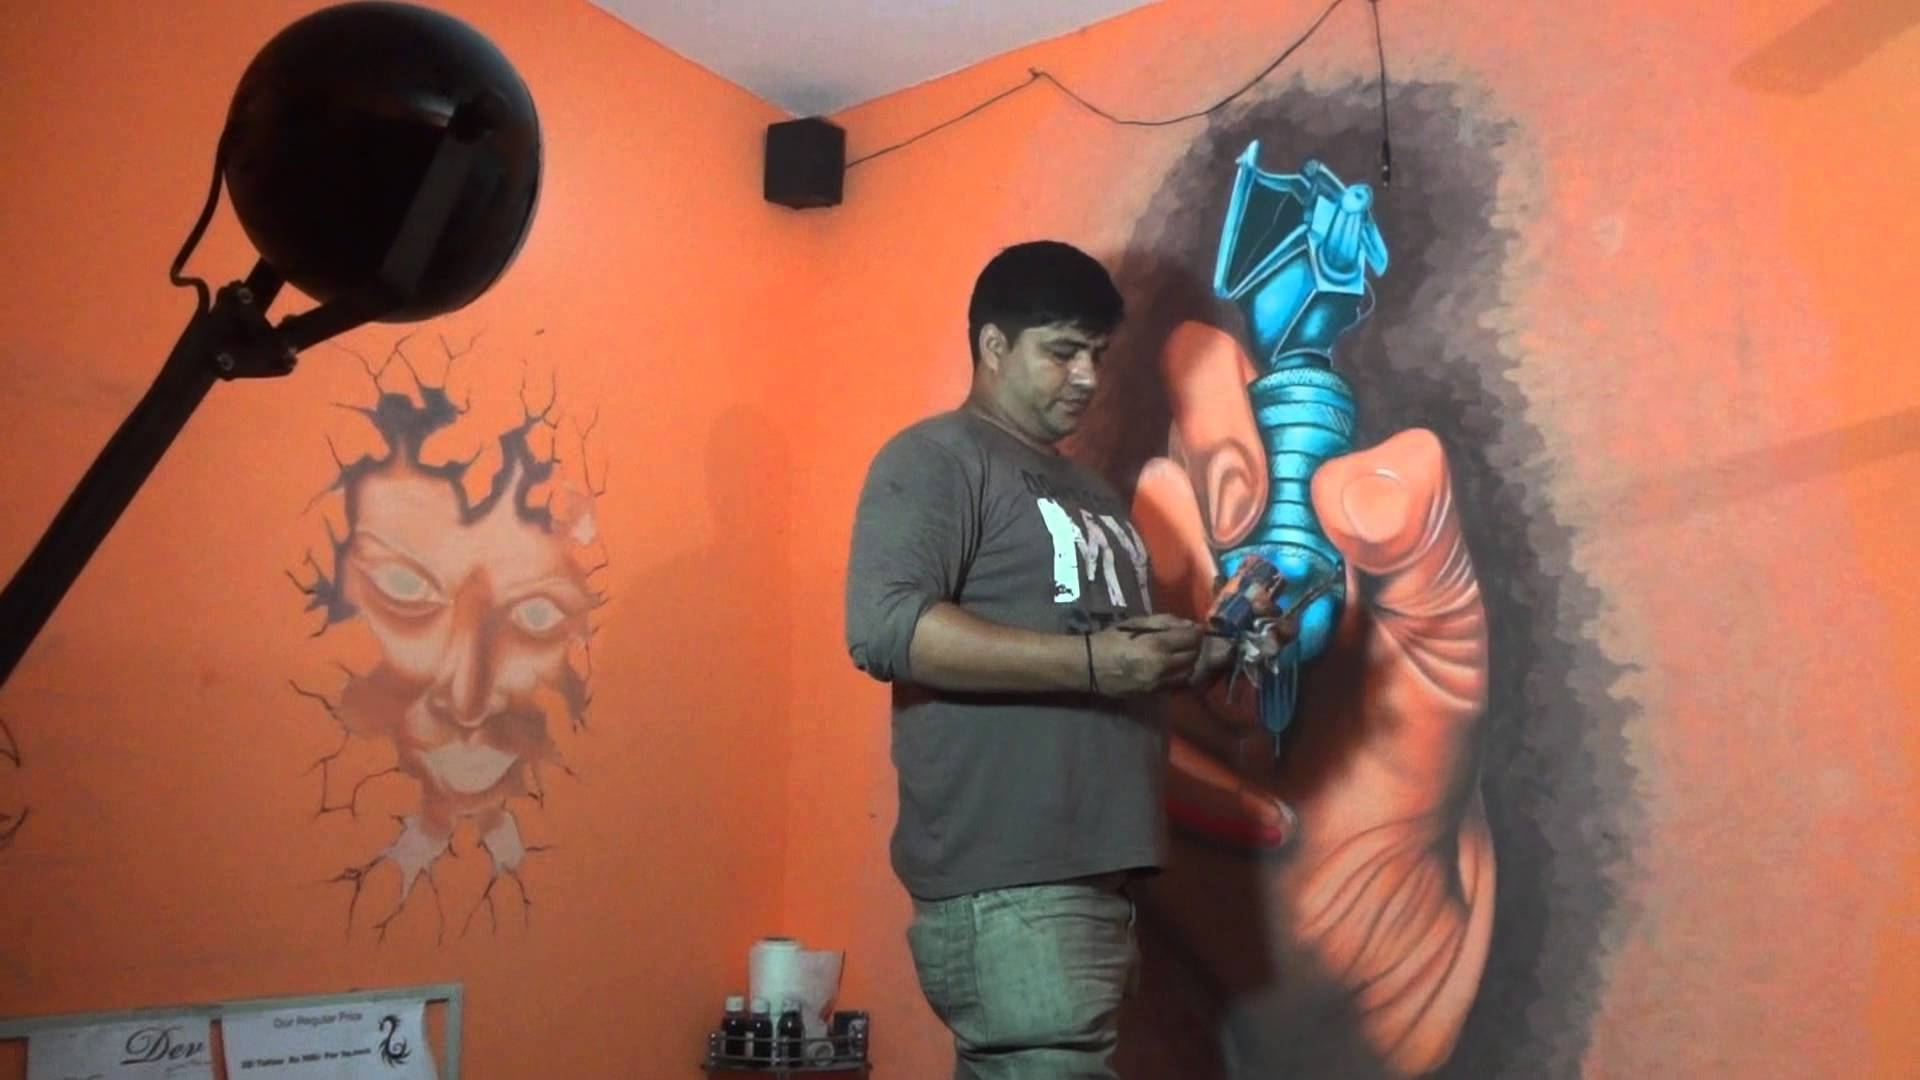 Tattoo Shop Wall Artdev 9313666999 – Youtube Intended For Most Recently Released Tattoo Wall Art (View 11 of 20)